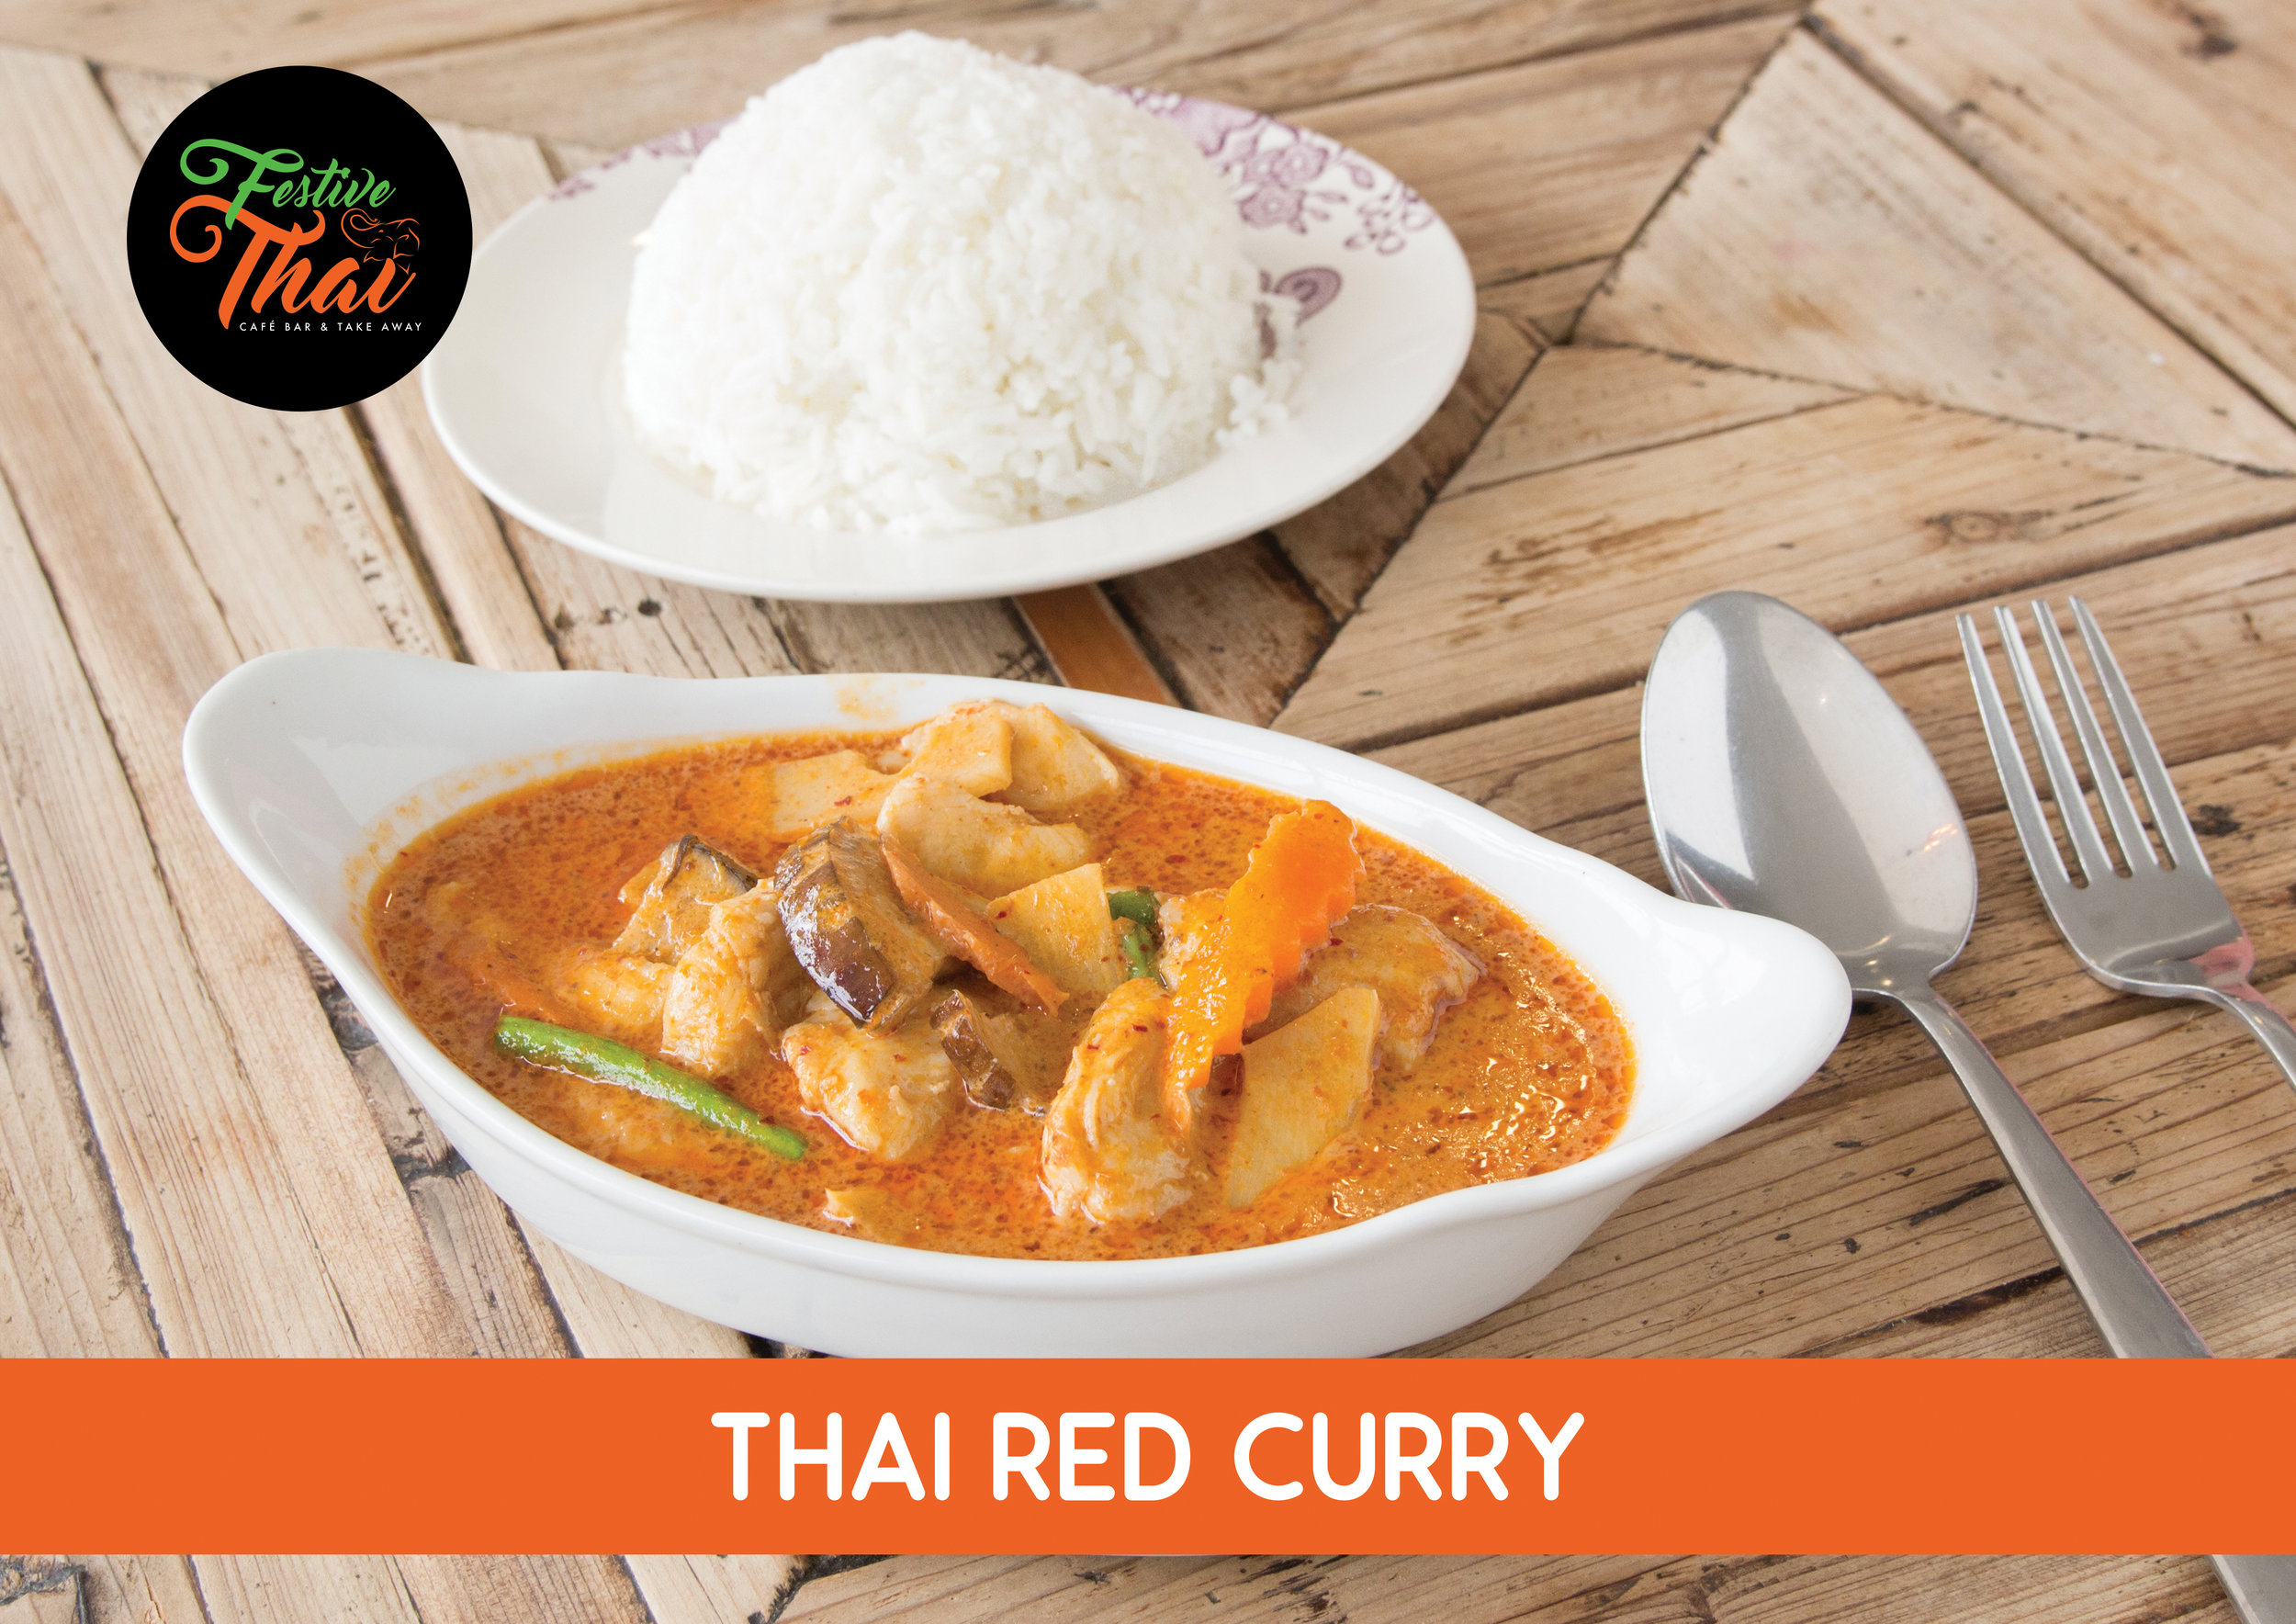 13_thai red curry.jpg